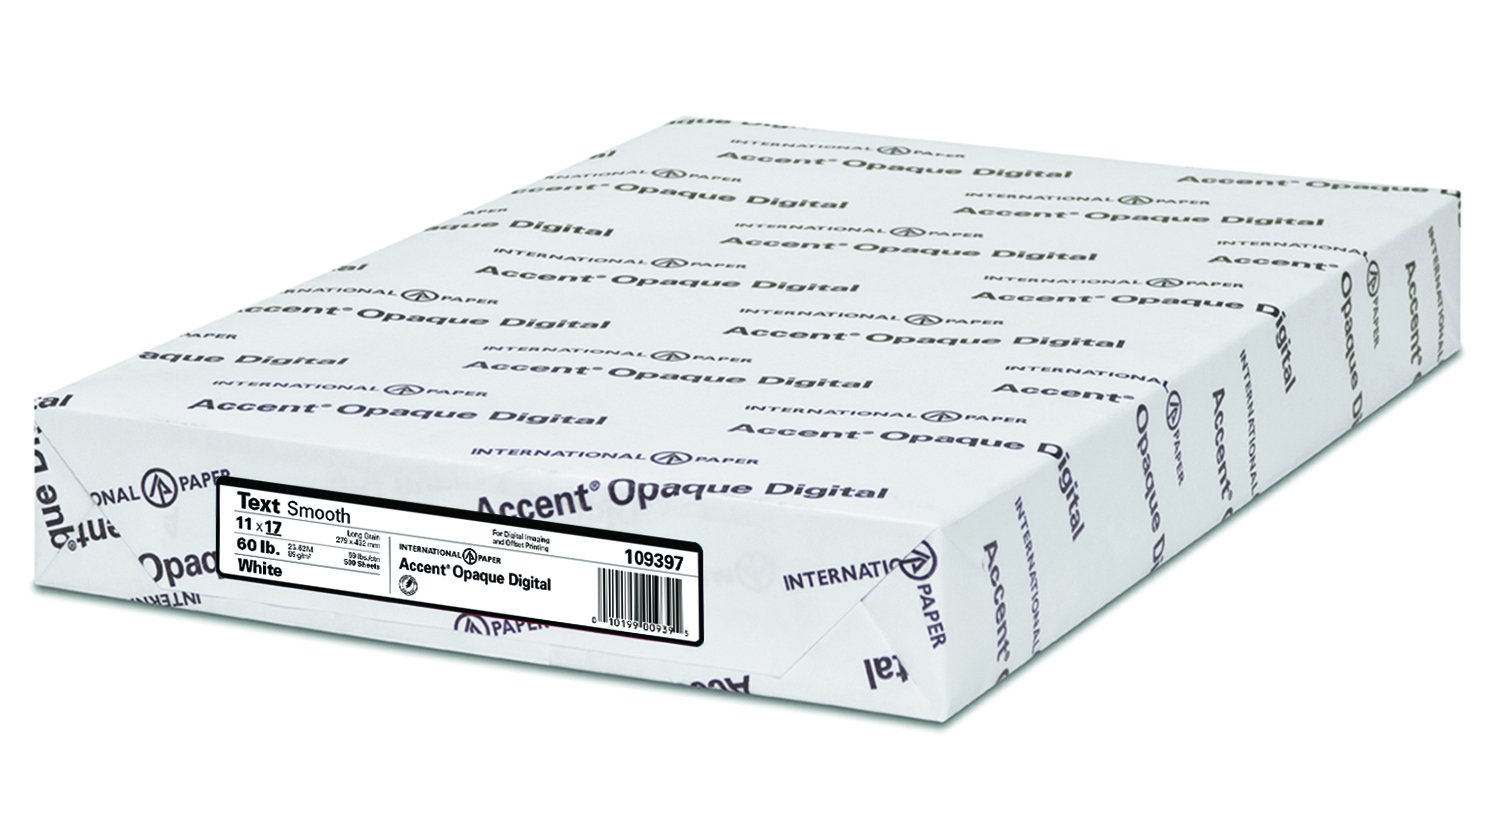 Accent Opaque Digital Inkjet with ImageLok Technology, White, 24lb / 60lb, Ledger, 11 x 17, 95 Bright, 500 Sheets / 1 Ream,)029397R) Made In The USA